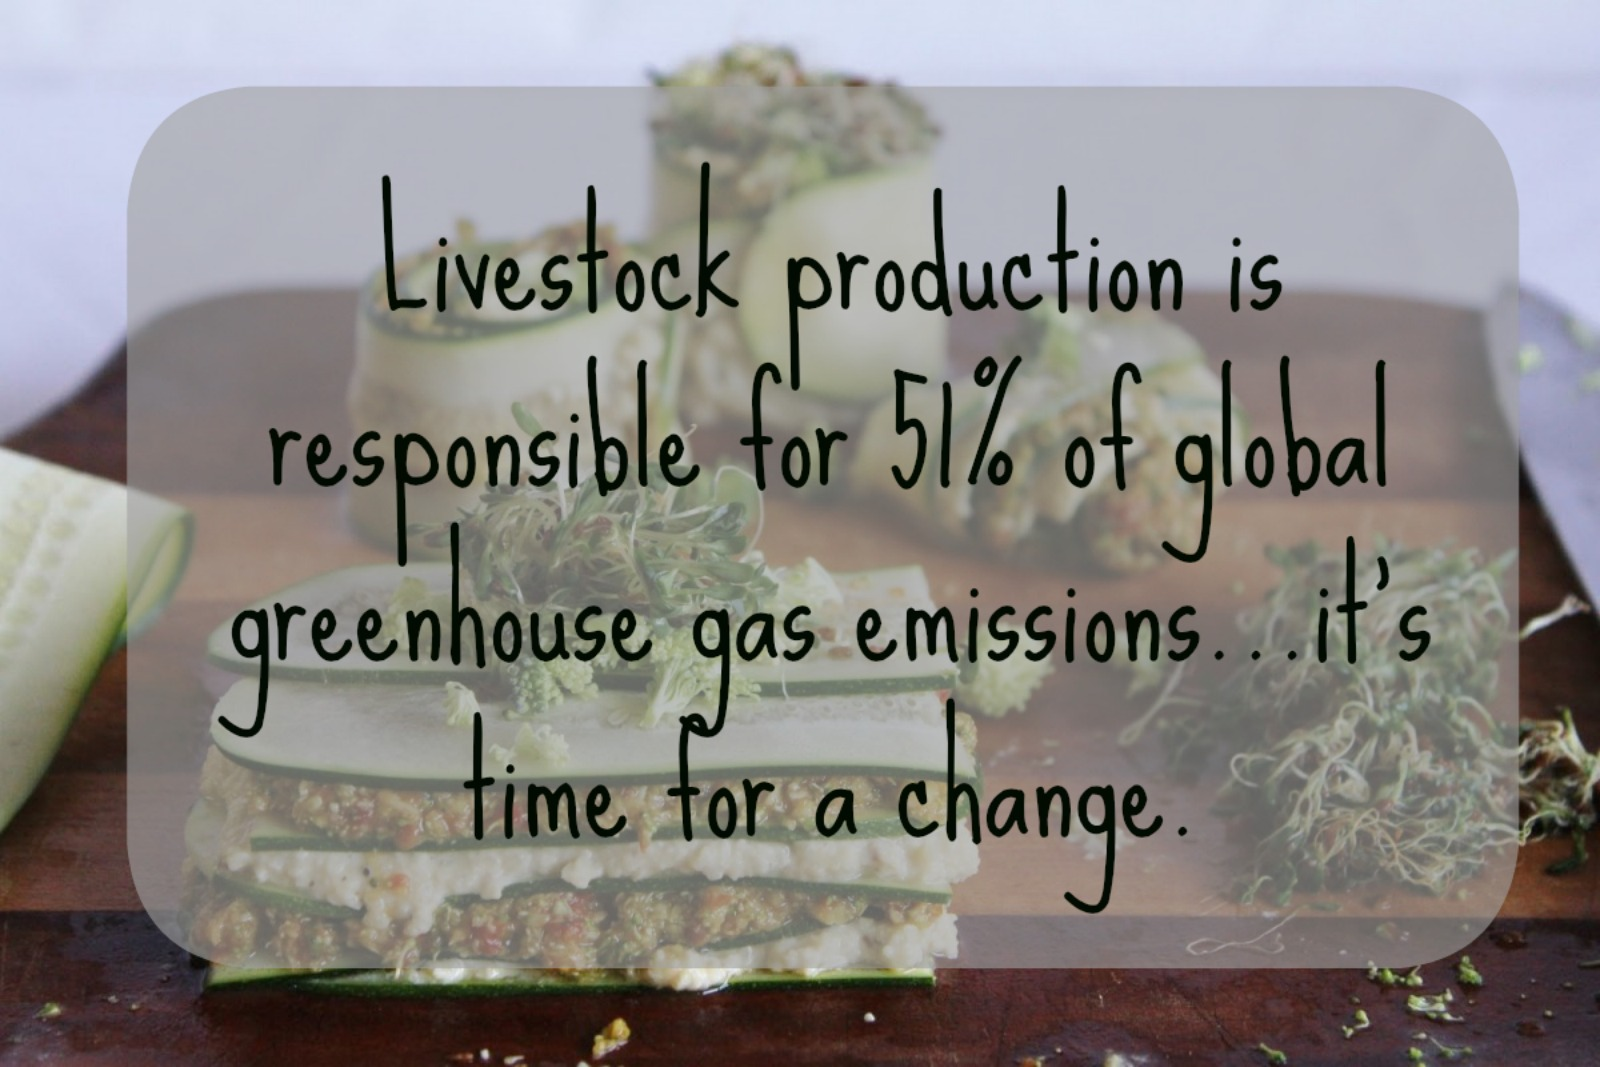 Serious About Addressing Climate Change? It's Time to Get Serious About Changing Your Diet